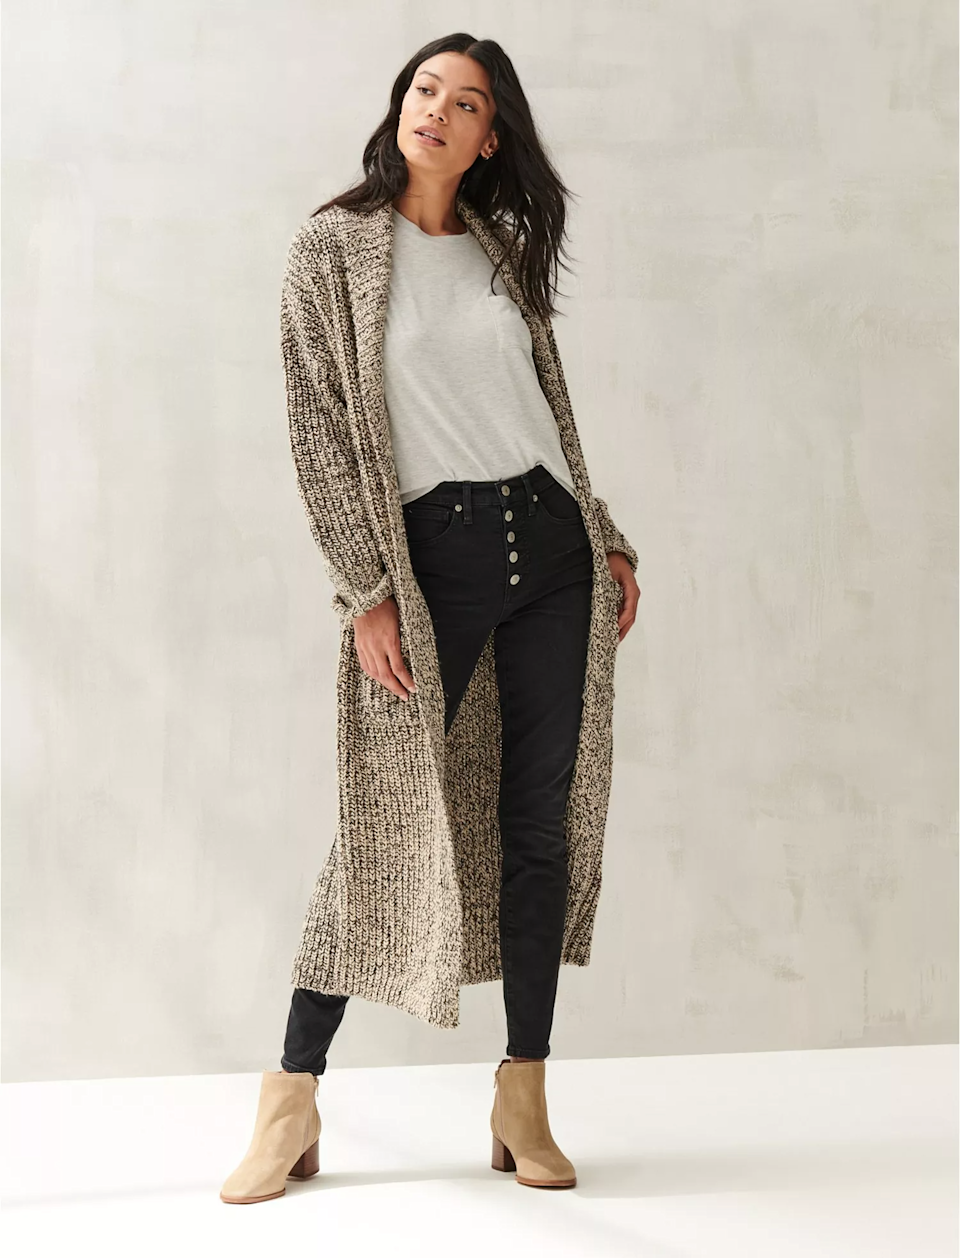 "<br><br><strong>Lucky Brand</strong> Sweater Coat, $, available at <a href=""https://go.skimresources.com/?id=30283X879131&url=https%3A%2F%2Fwww.luckybrand.com%2Fsweater-coat%2F7W52364.html"" rel=""nofollow noopener"" target=""_blank"" data-ylk=""slk:Lucky Brand"" class=""link rapid-noclick-resp"">Lucky Brand</a>"